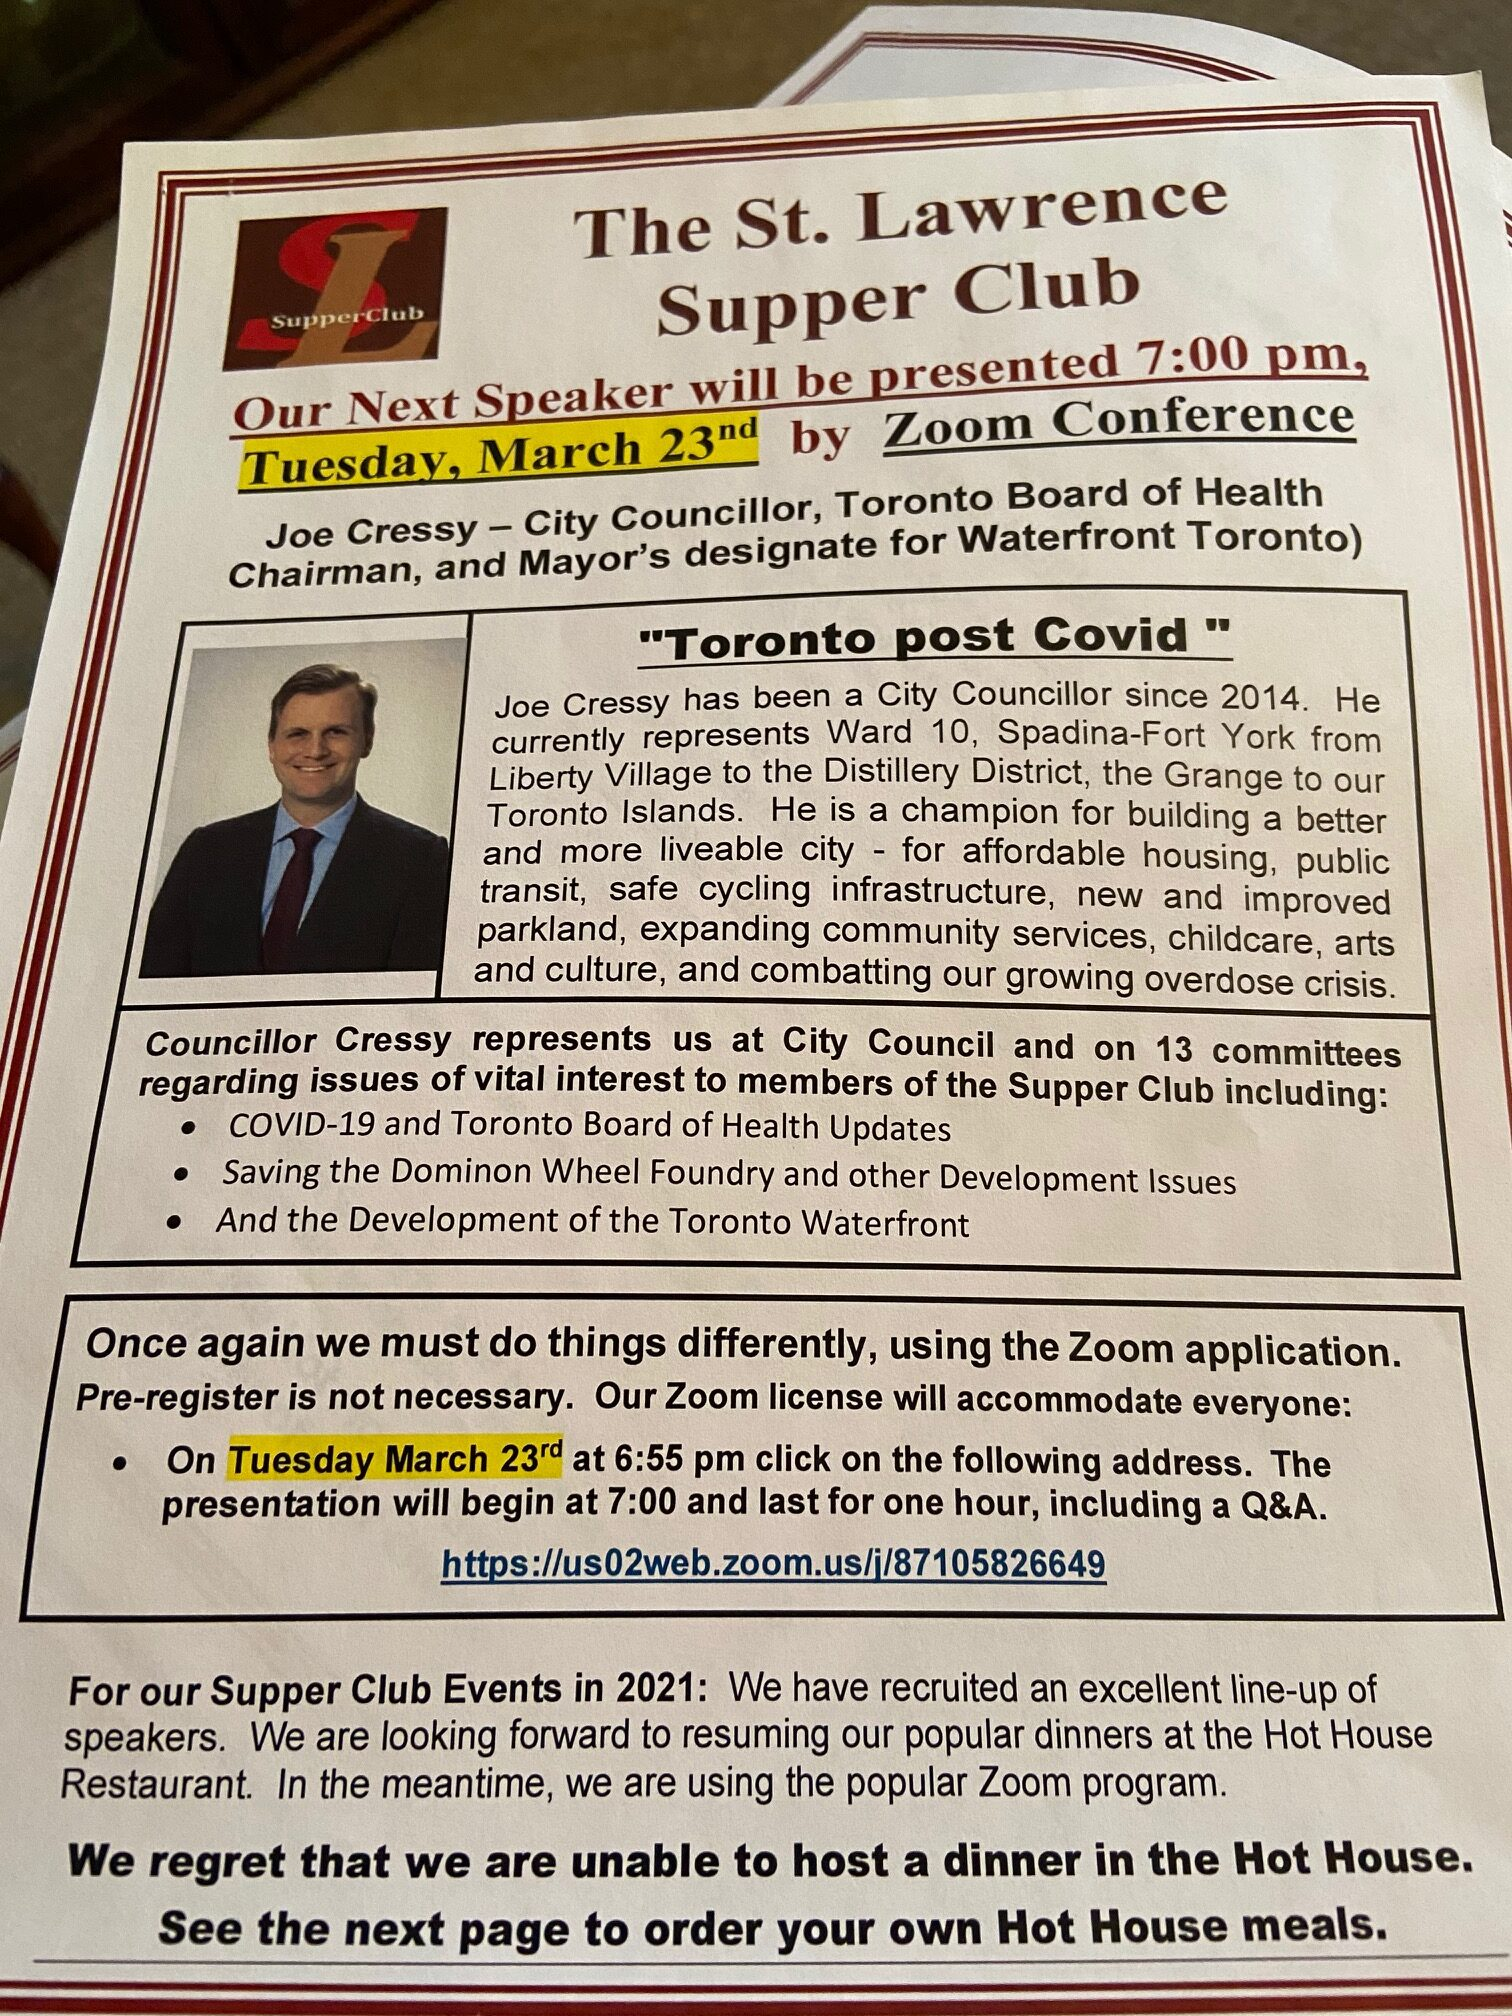 Joe Cressy scheduled to address a Q/A session with the St. Lawrence Supper Club on Tuesday, March 23, 7 pm.